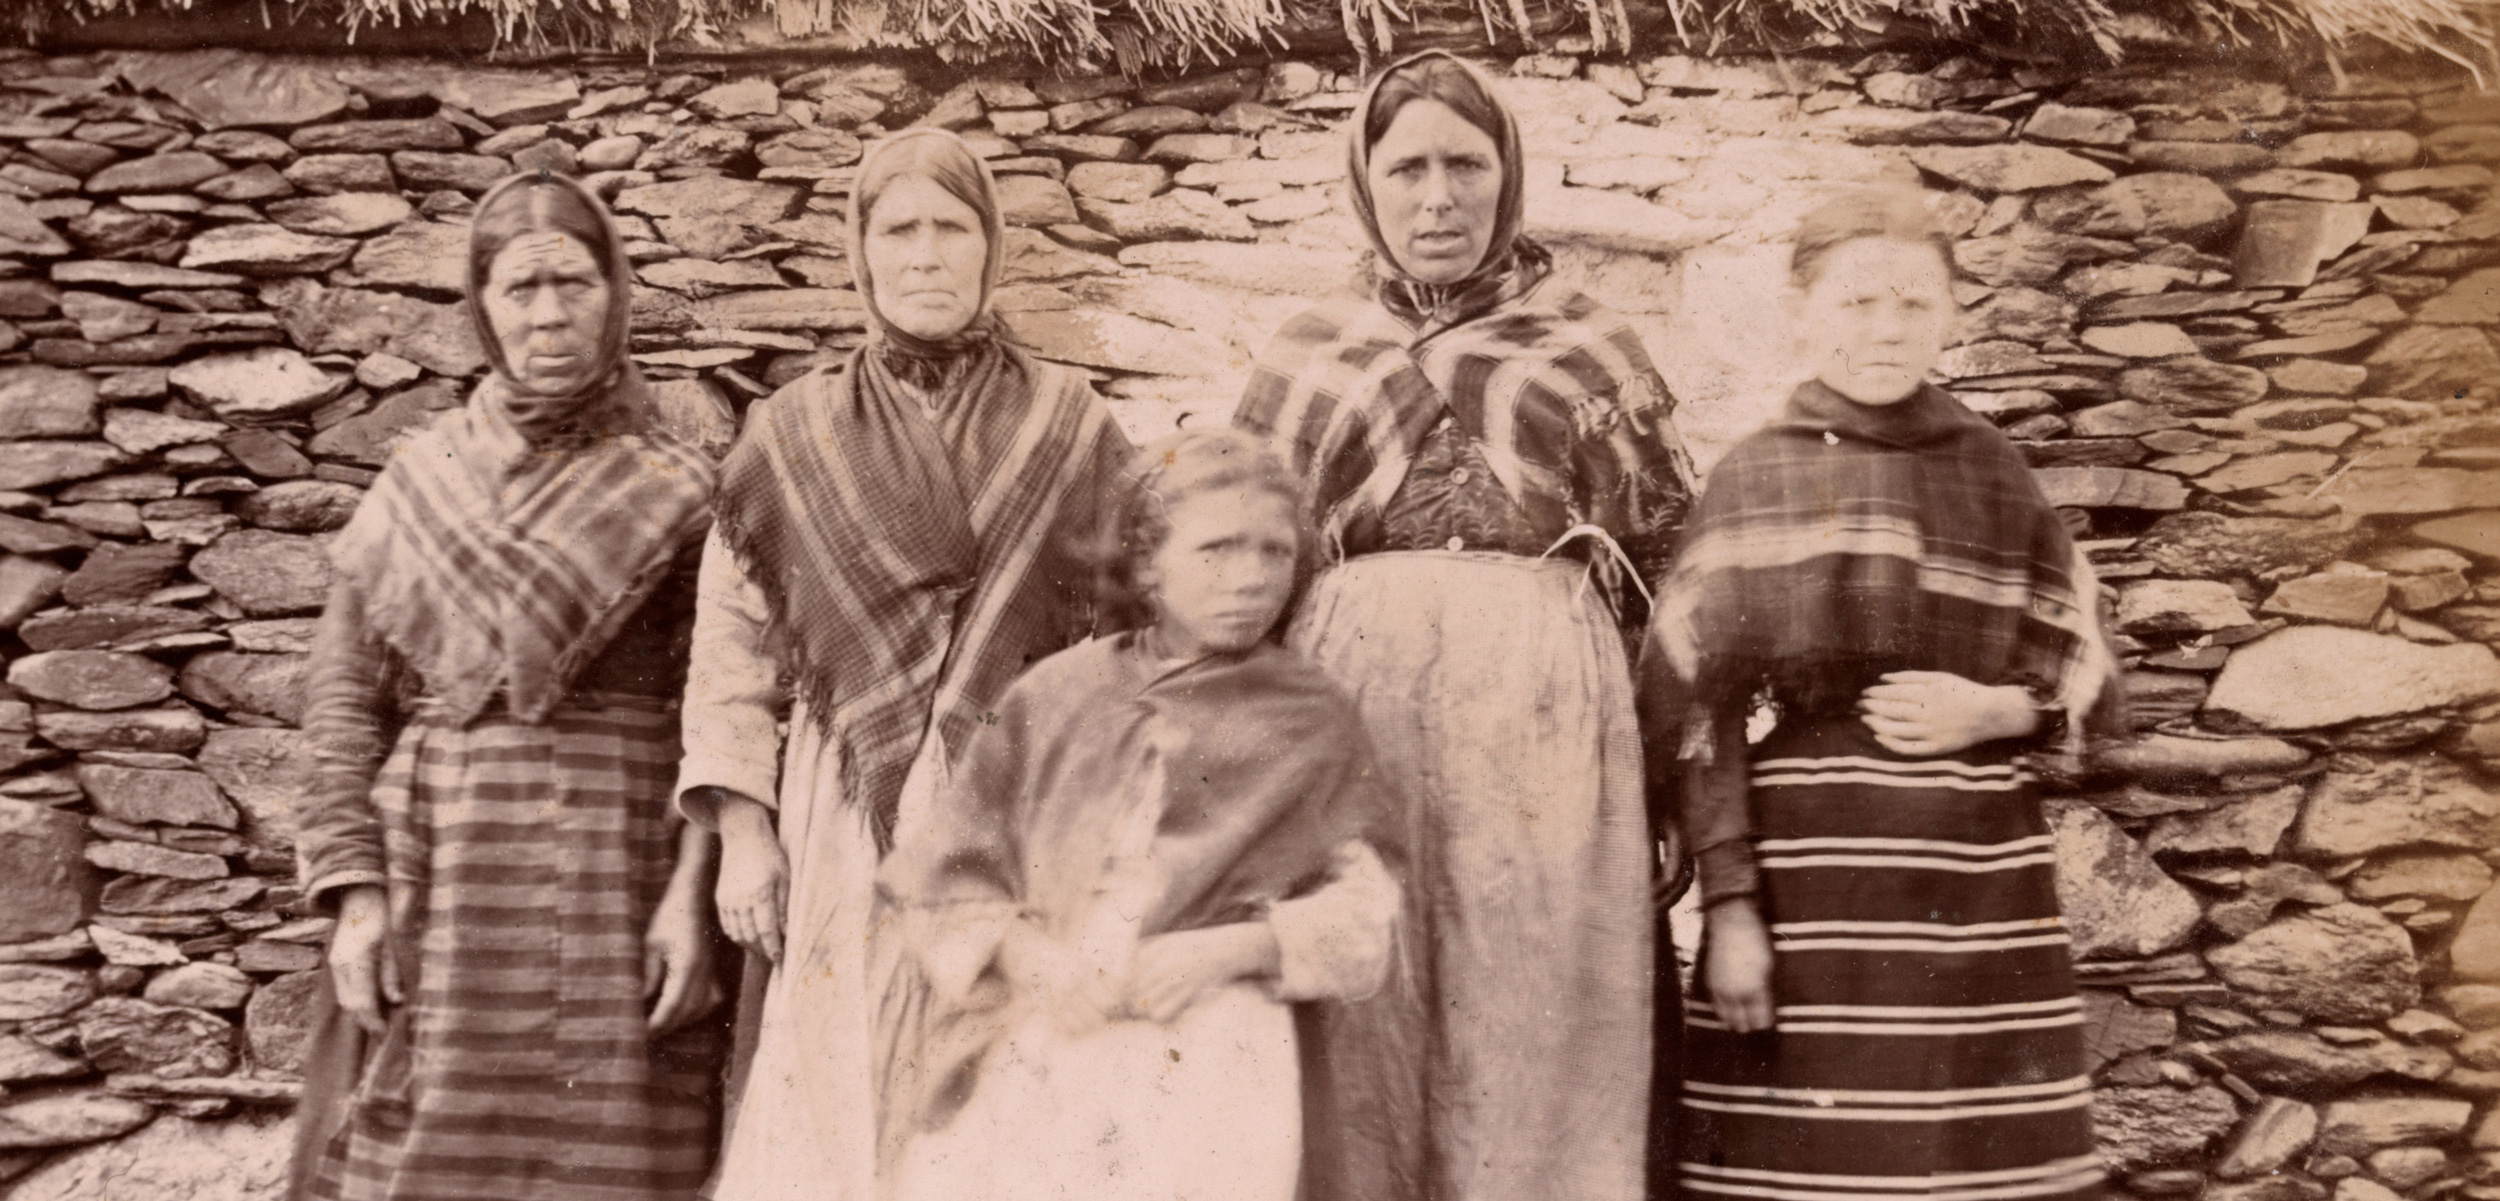 After surviving starvation on the Irish island of Inishbofin, the women and children of the Halloran family never abandoned hope for a better future. Photo courtesy of Trinity College Library Dublin